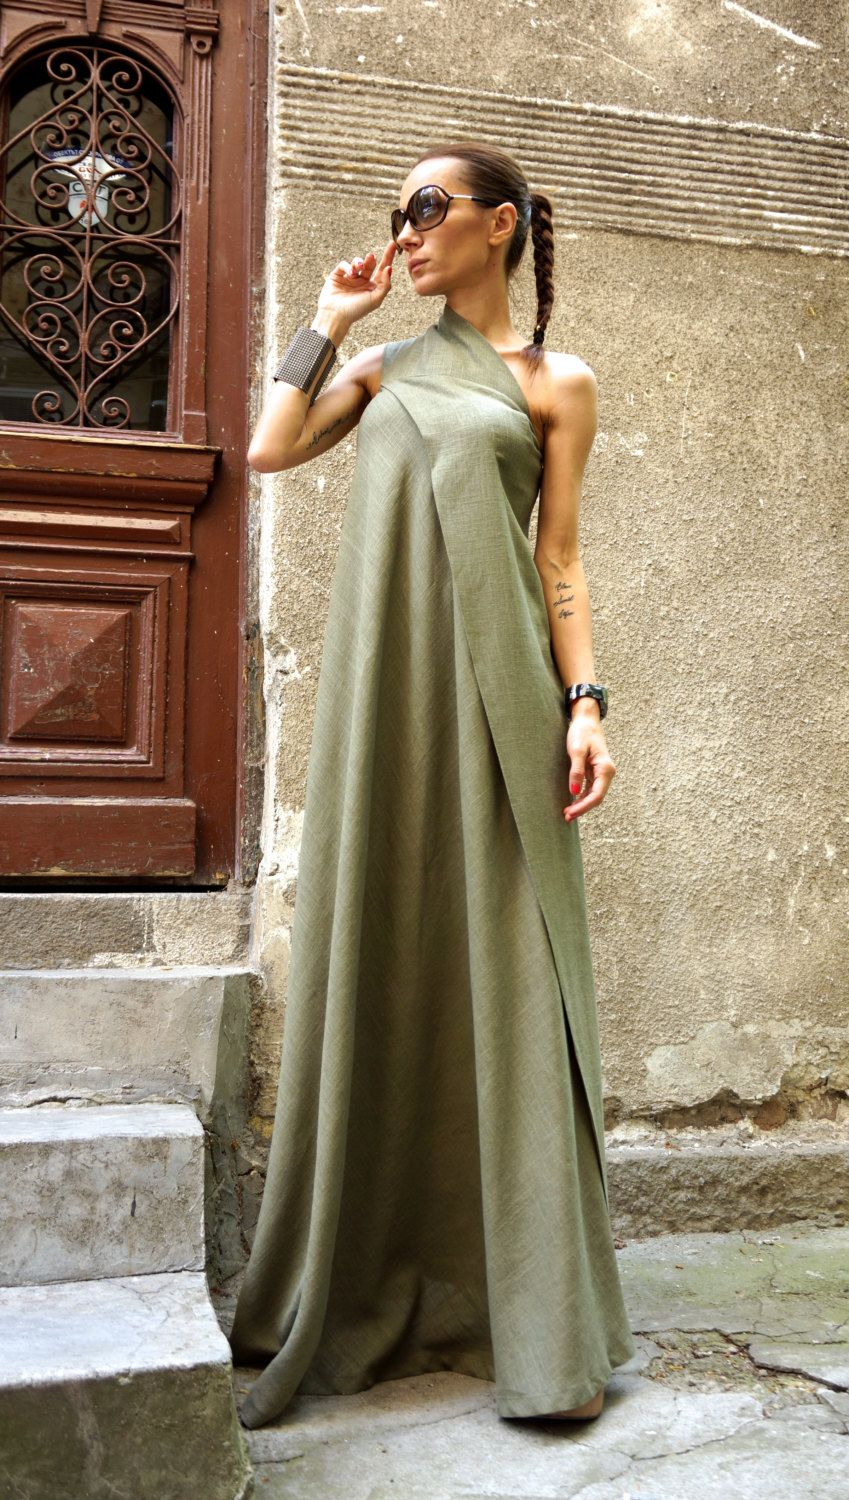 NEW Maxi Dress   Olive Green Kaftan Linen Dress   One Shoulder Dress ... a0eb7c569c3